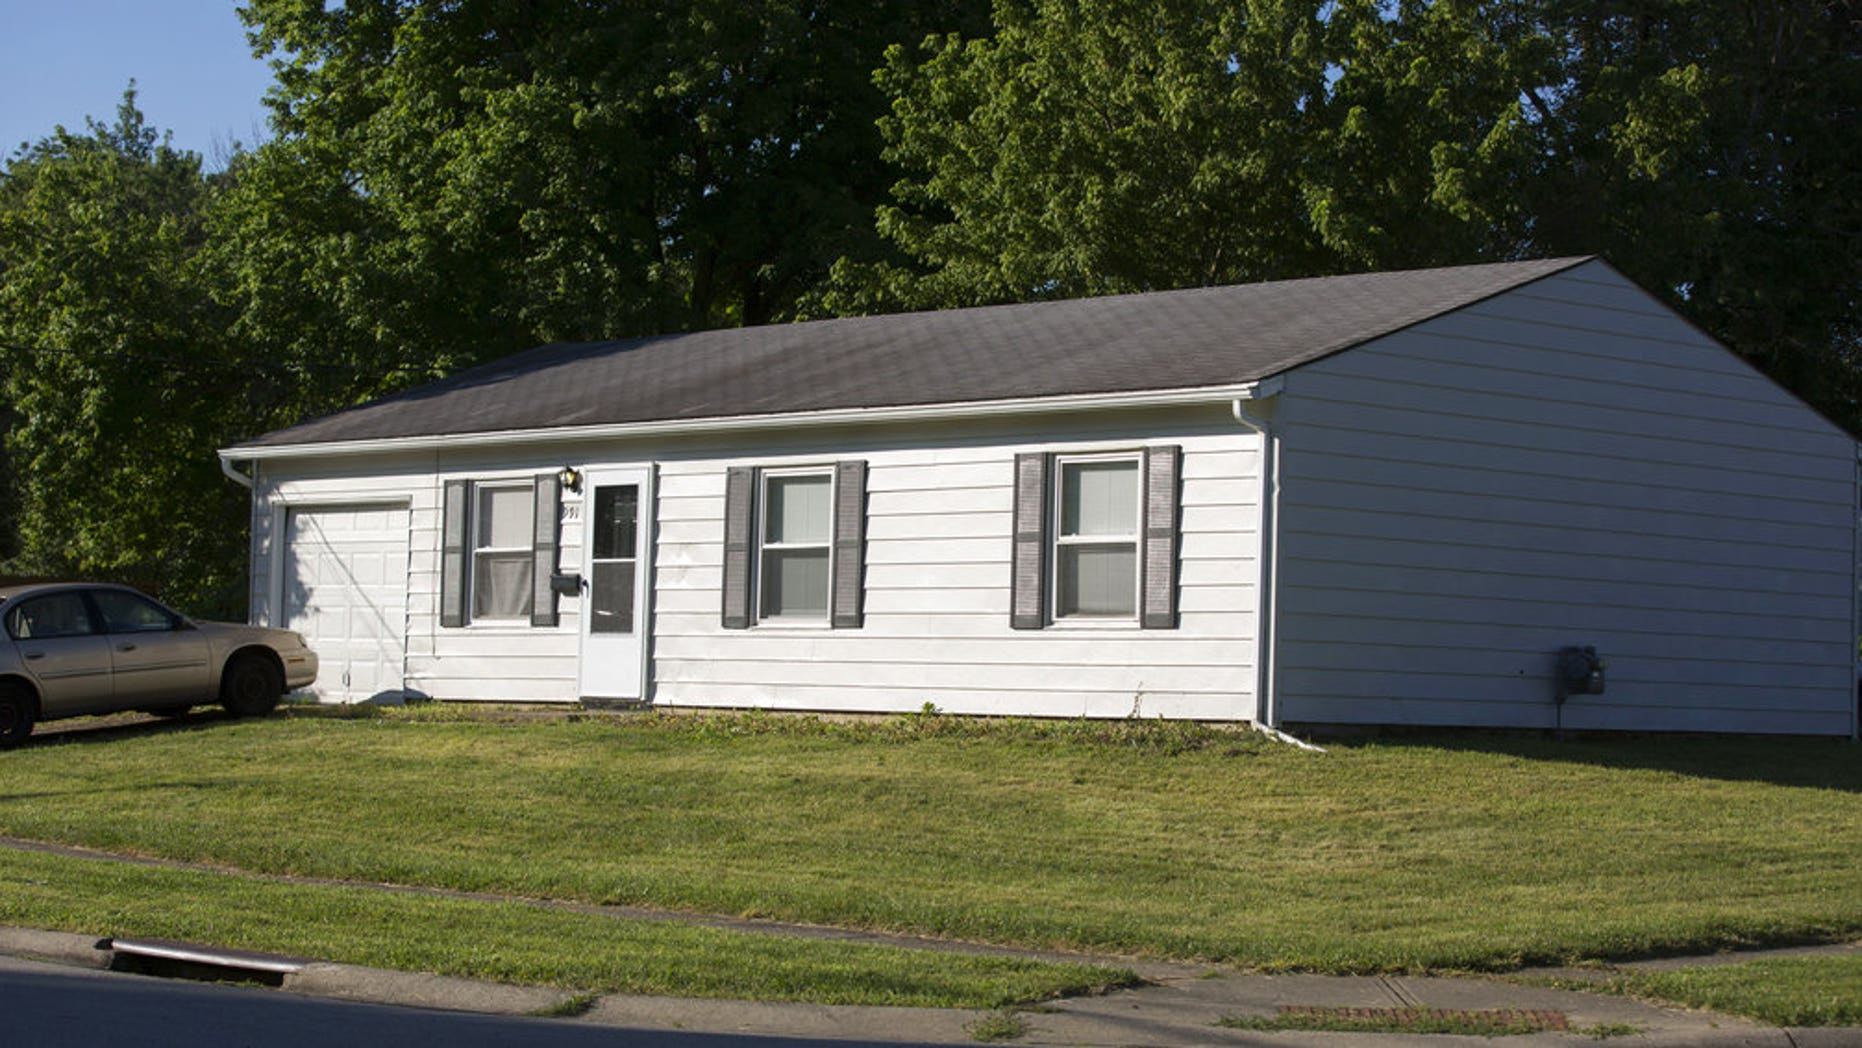 The home in Colerain Township that was the scene of a deadly shooting on July 8.